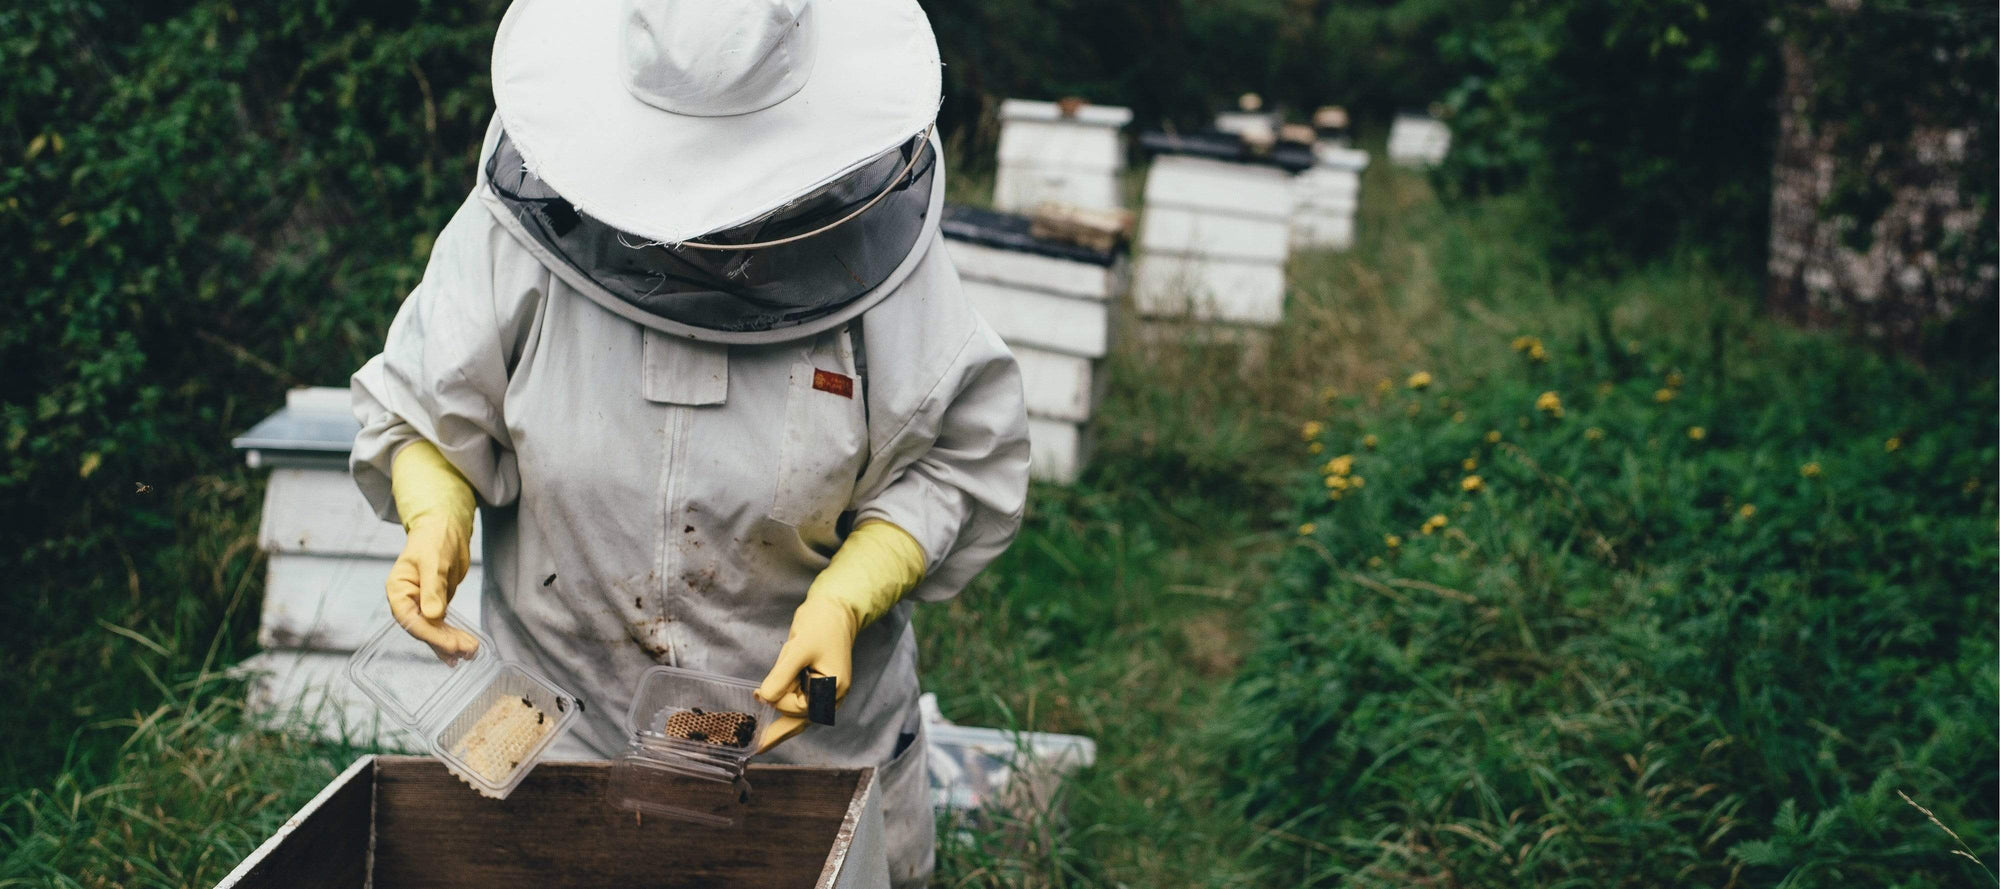 Meet our Beeswax Farmer